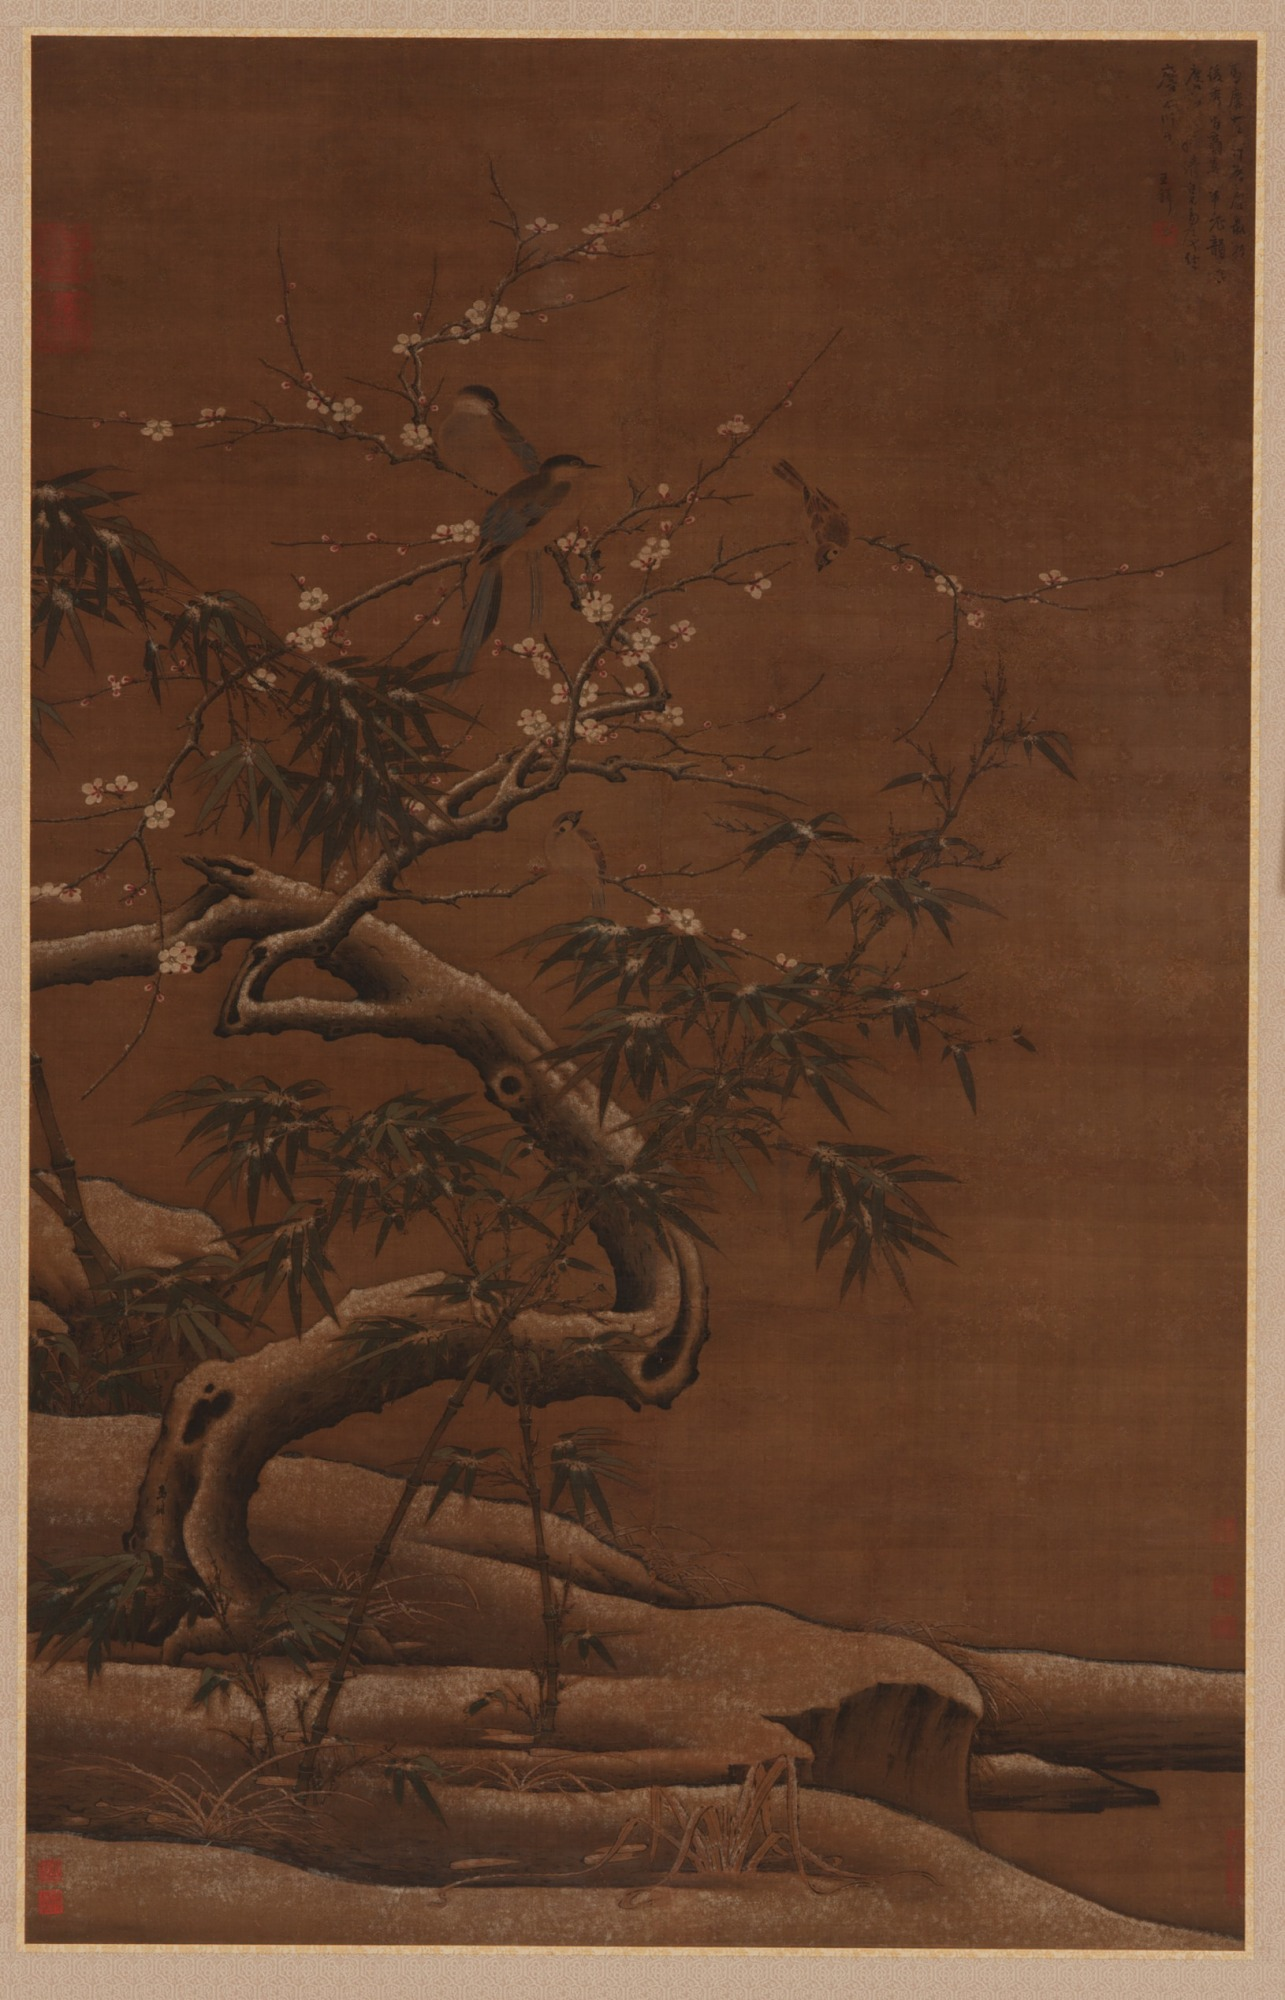 : Birds, Plum Blossoms, and Bamboo in Winter